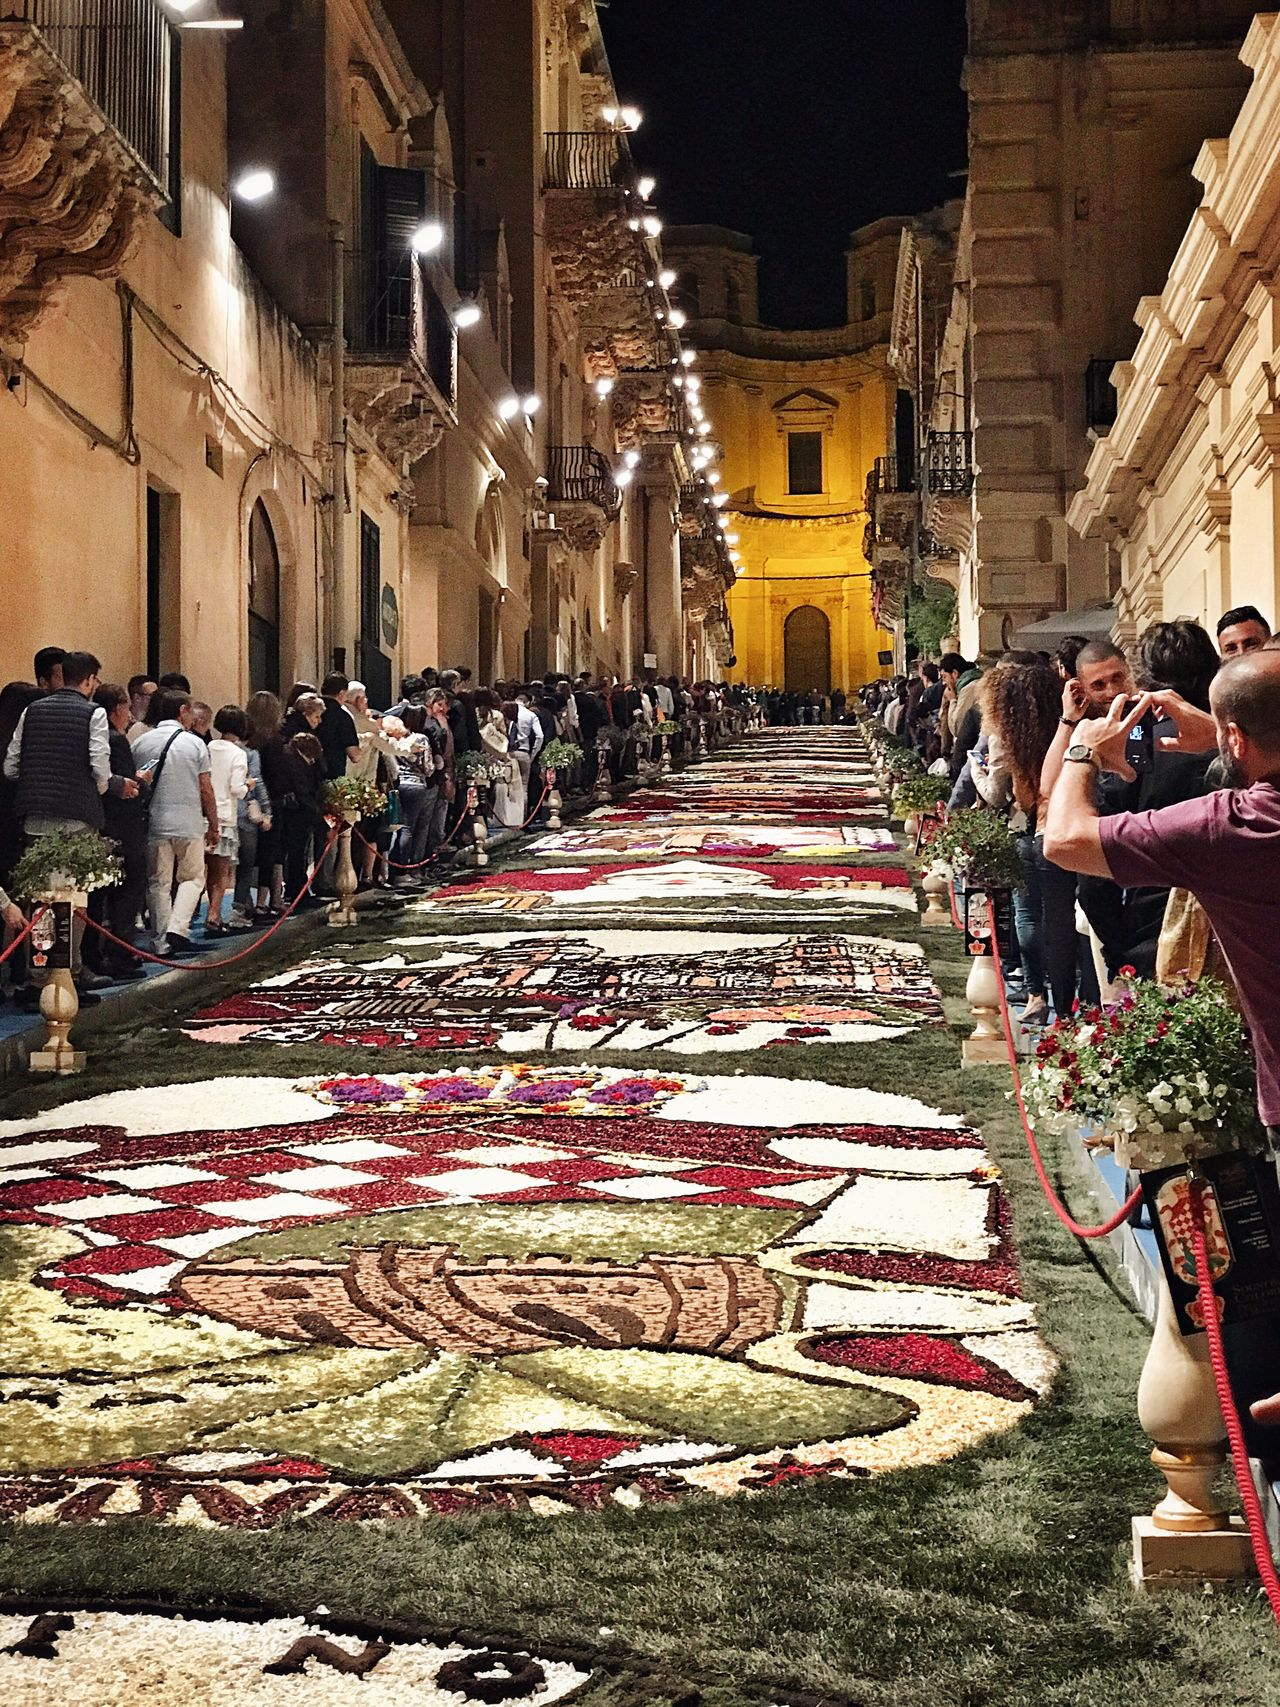 Noto Flower Festival 2017 Costa Orientale - Sicilia Large Group Of People Architecture Built Structure Building Exterior Night Real People History Men Outdoors Women Illuminated Crowd People Adult Adults Only Festival Festival Season Flower Flowers Flower Collection Flowers,Plants & Garden Flowers, Nature And Beauty The Architect - 2017 EyeEm Awards Live For The Story The Street Photographer - 2017 EyeEm Awards